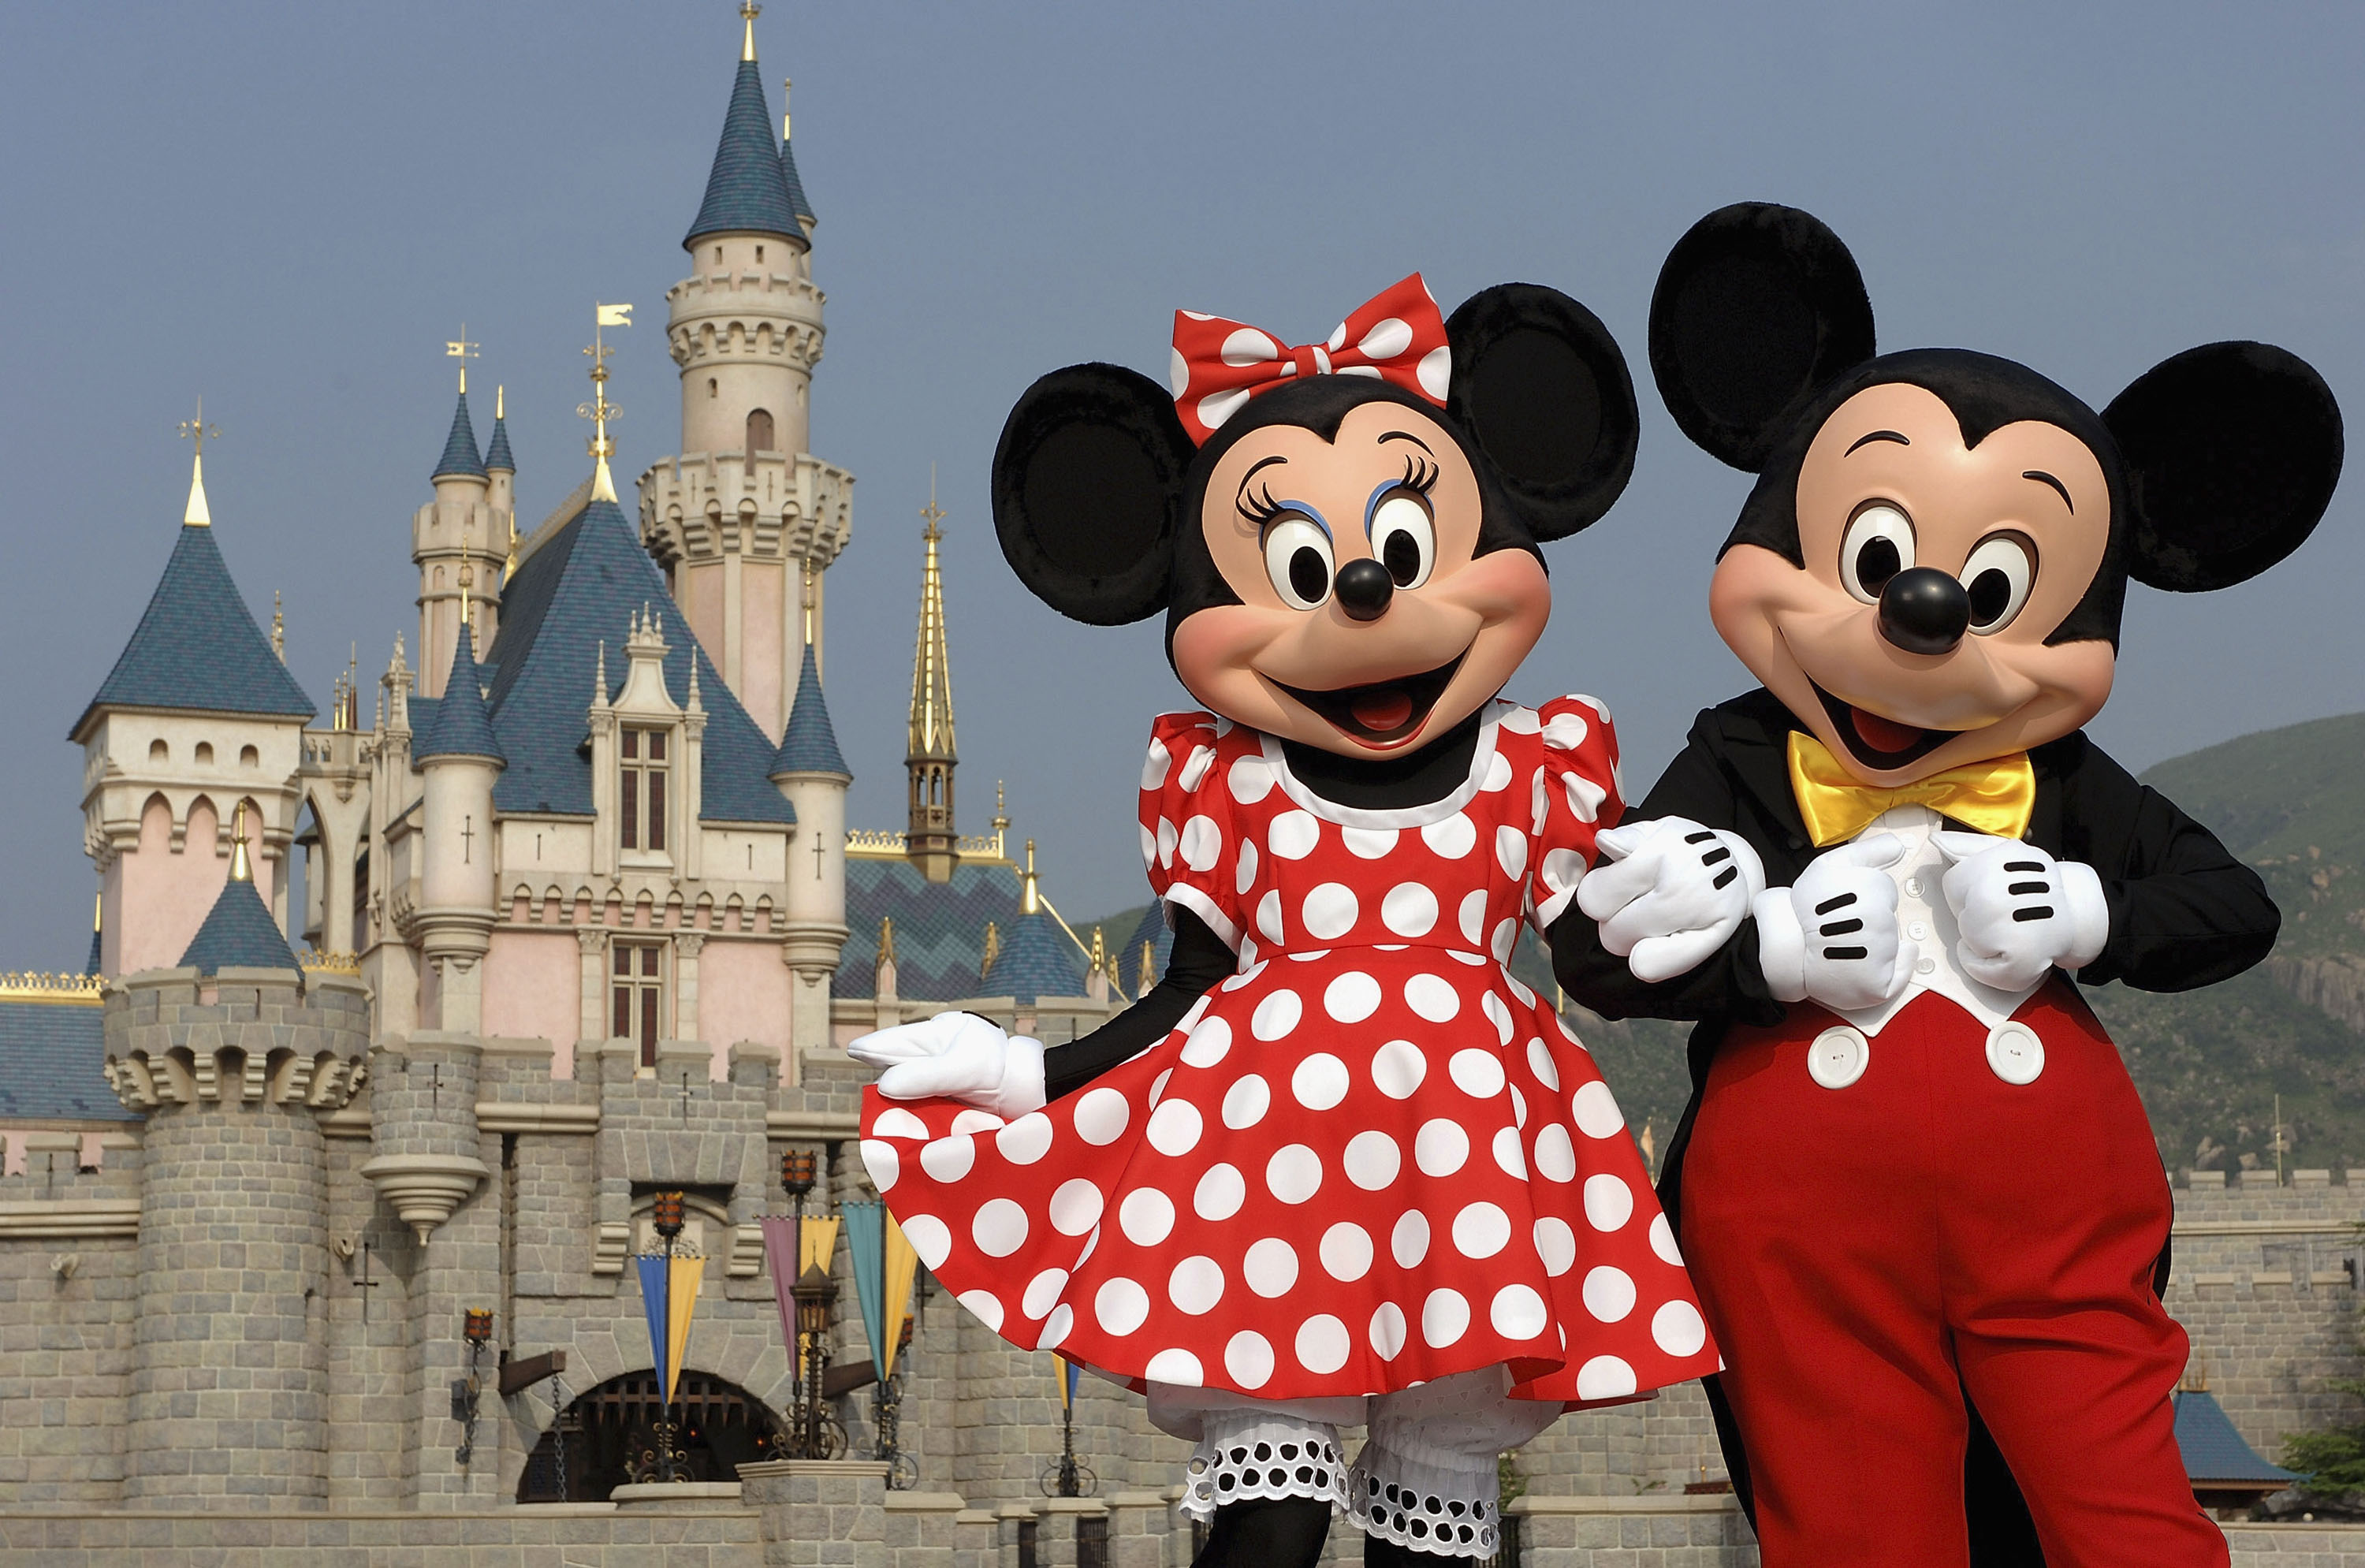 In a photo taken Sept. 1, 2005, Mickey Mouse and Minnie Mouse are seen in front of Sleeping Beauty Castle at Hong Kong Disneyland Park.  The new theme park and vacation resort will officially open Sept. 12, 2005.  Hong Kong Disneyland Resort is a family entertainment and recreation center consisting of a full-day, Disneyland-style theme park, two Disney hotels and a lakeside recreation center. (Mark Ashman, photographer)